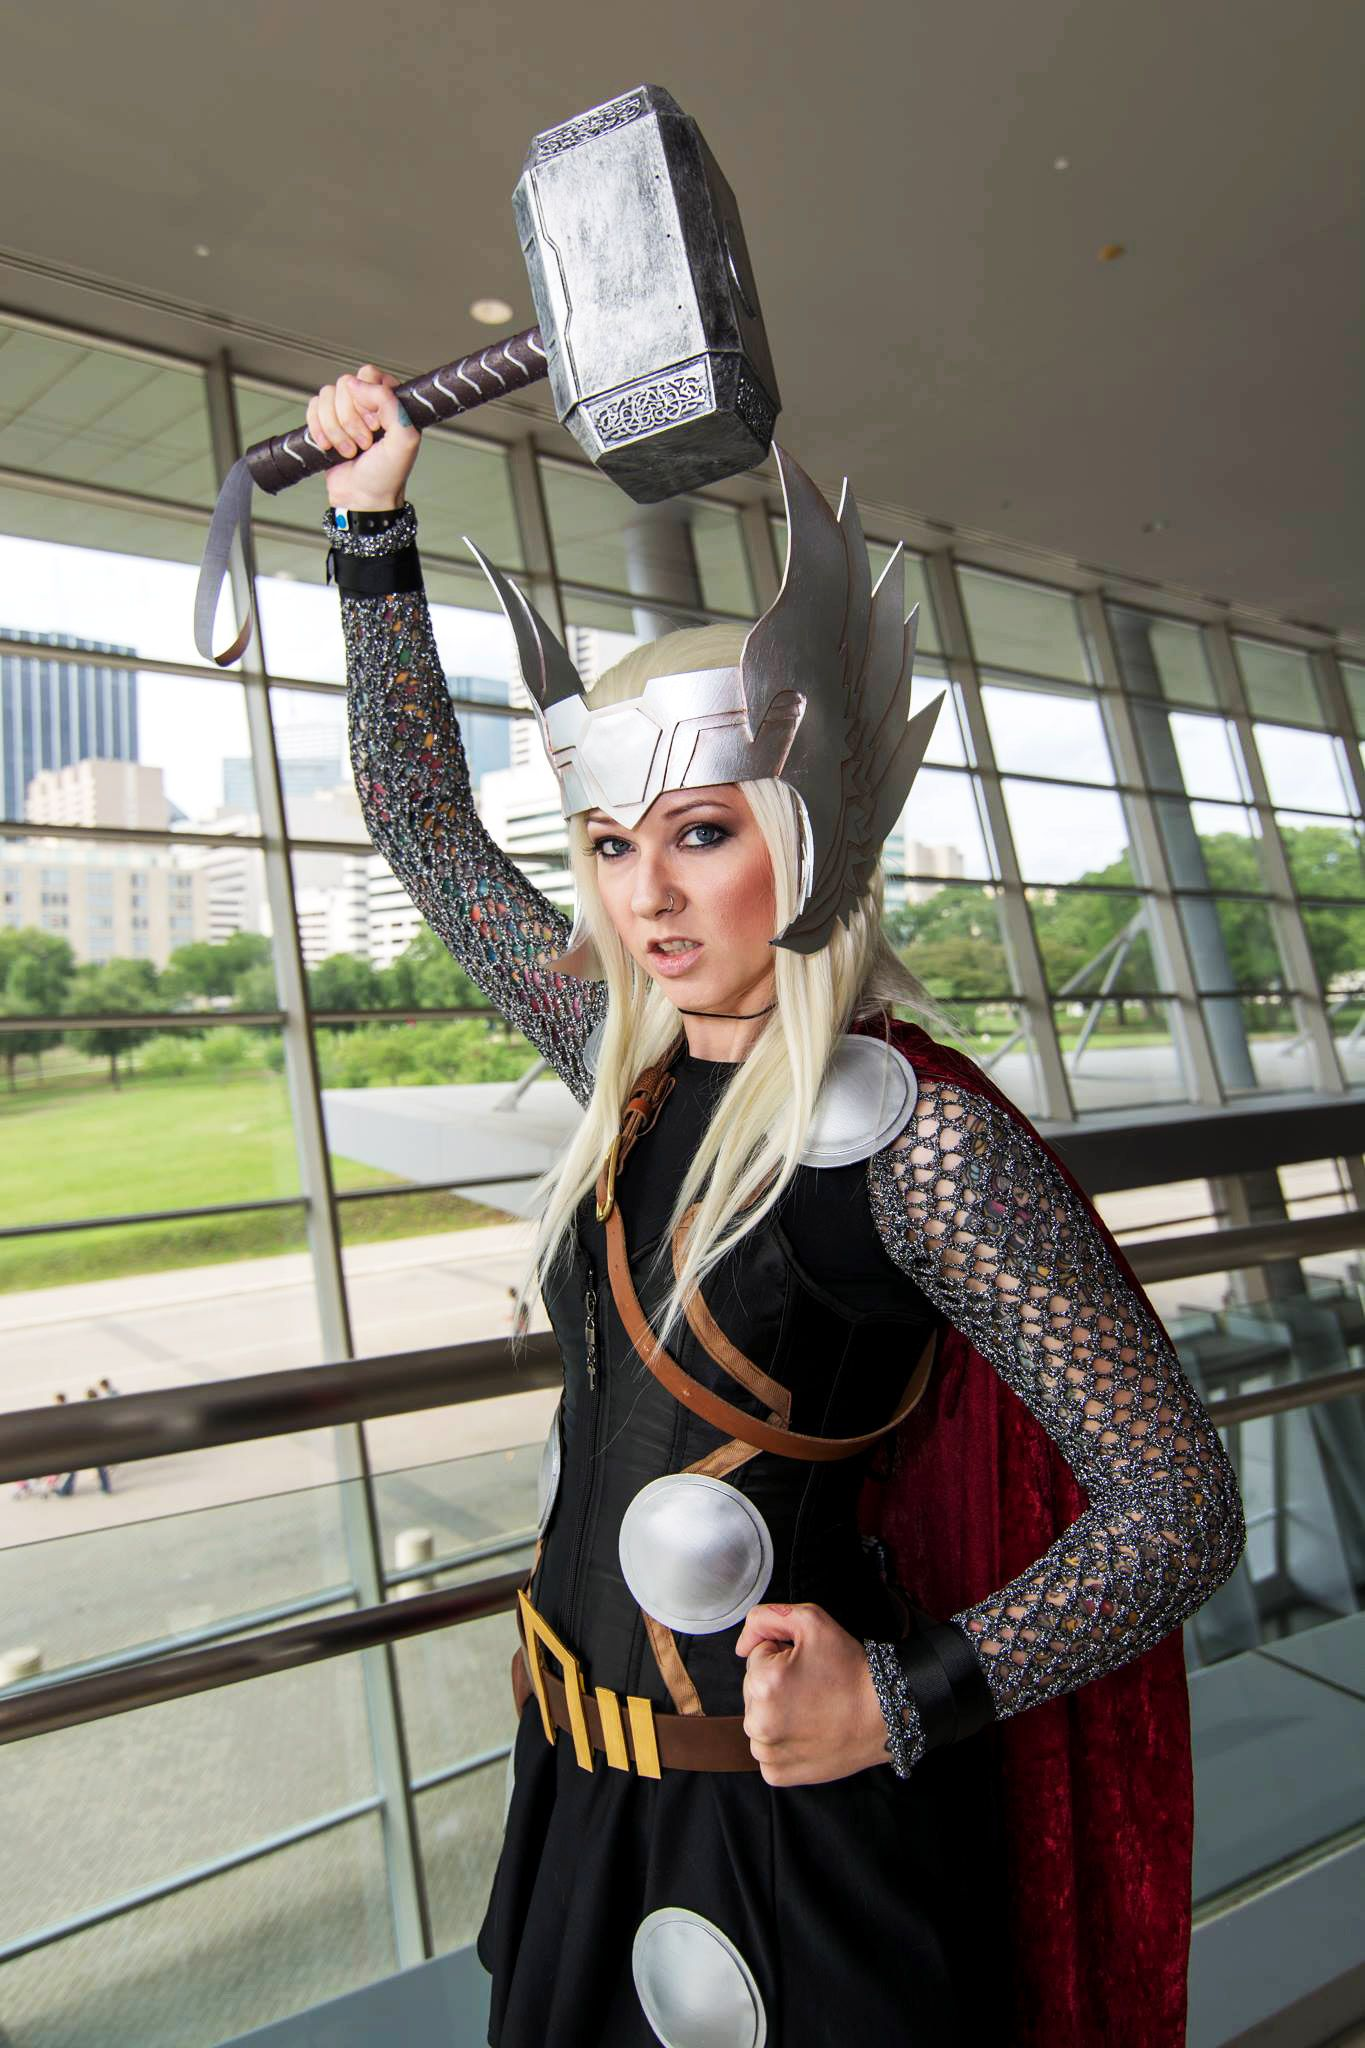 The Mighty Thor #cosplay by Anna Lee | 2014 Dallas Comic Con